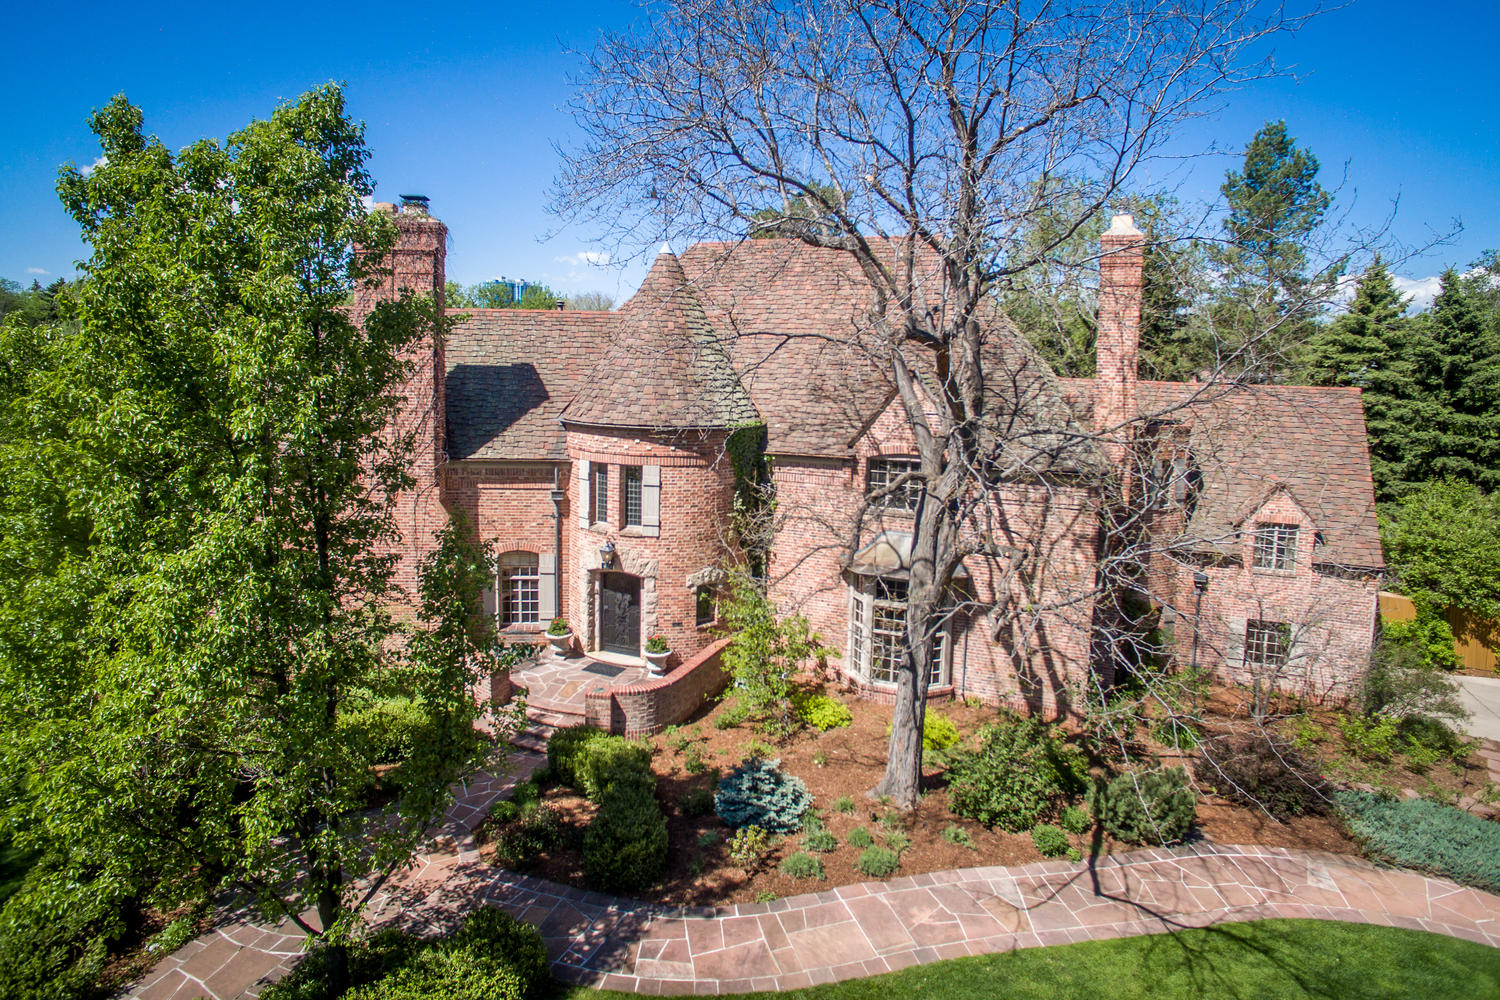 Single Family Home for Active at Historic 1933 Tudor in Country Club 401 Race Street Denver, 80206 United States